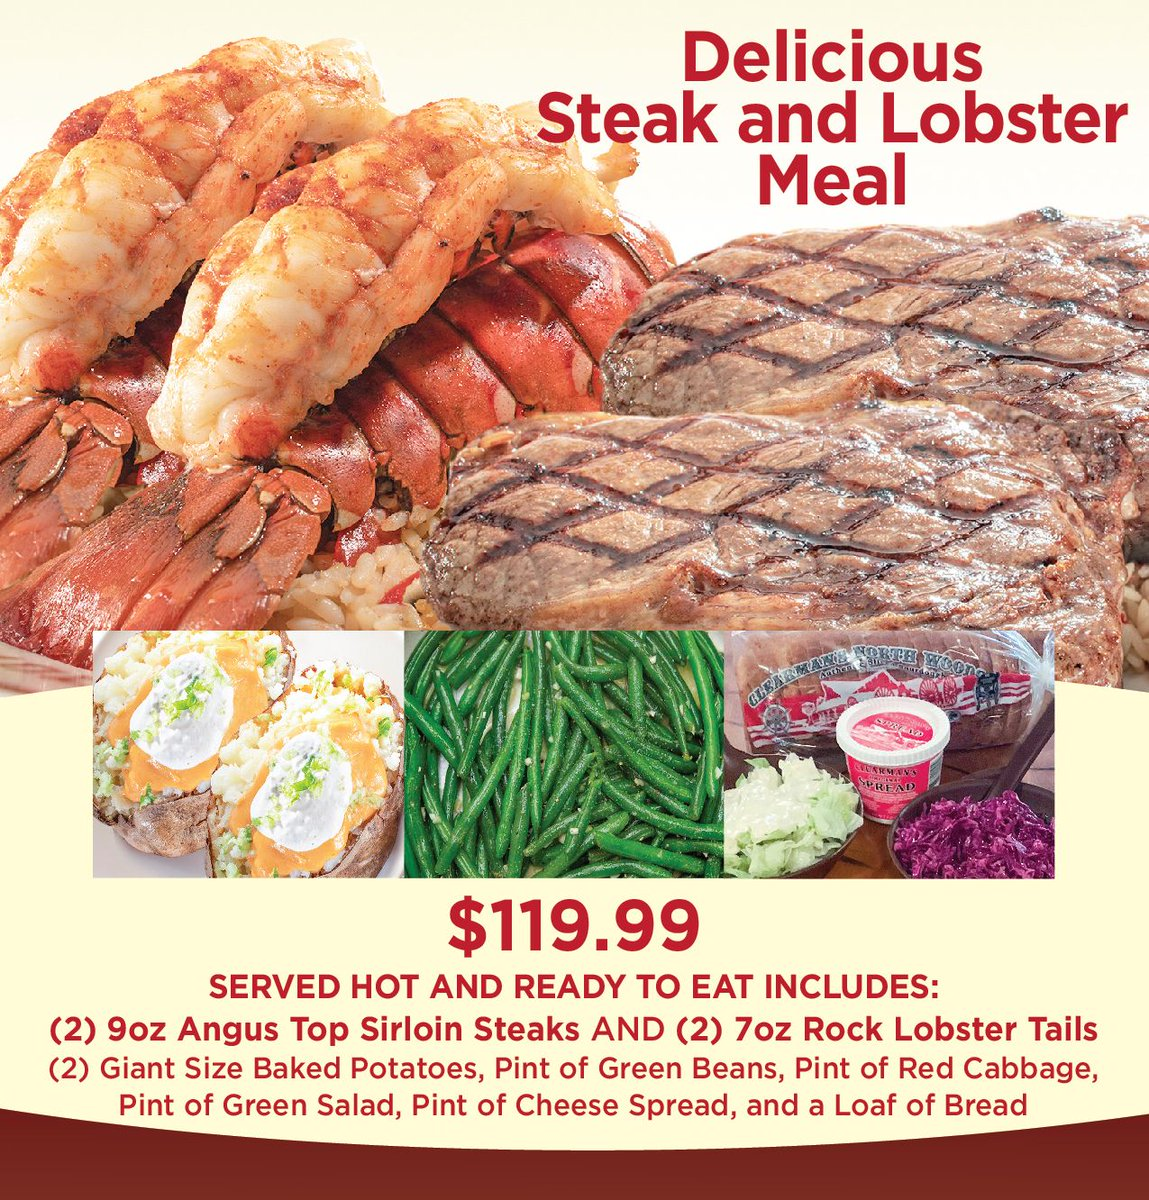 Celebrate #NationalLobsterDay on Friday with a delicious Rock Lobster dinner at #ClearmansSteakNStein. There's a #Steak & #Lobster Dinner for 2 available to order and take home! https://t.co/W7hFqF7SHJ (562) 699-8823, (562) 699-6204 Postmates delivery https://t.co/LAL44vK7Qc https://t.co/jqfpRREOOE